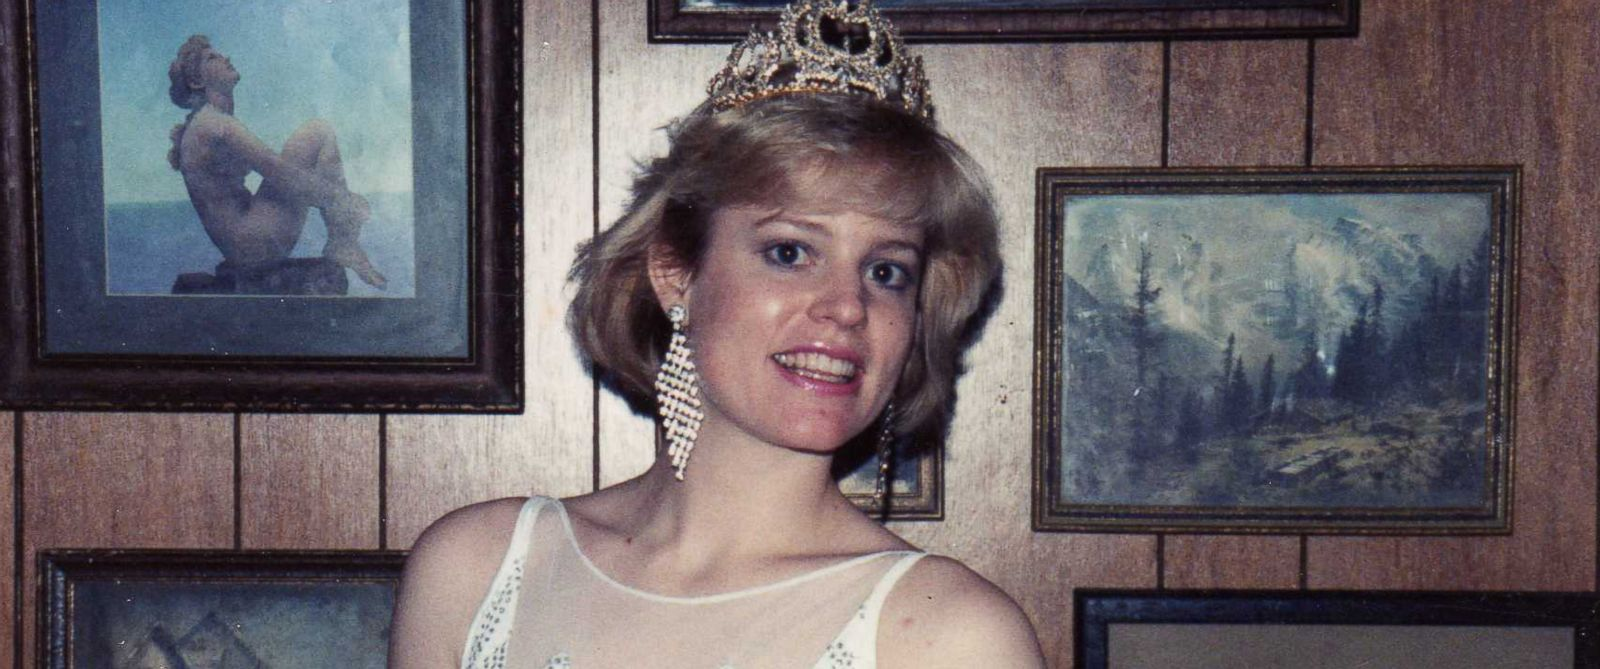 Photo: Genevieve De Montremare Was Born Genevieve Sanders, And Her Closest  Brush With Royalty